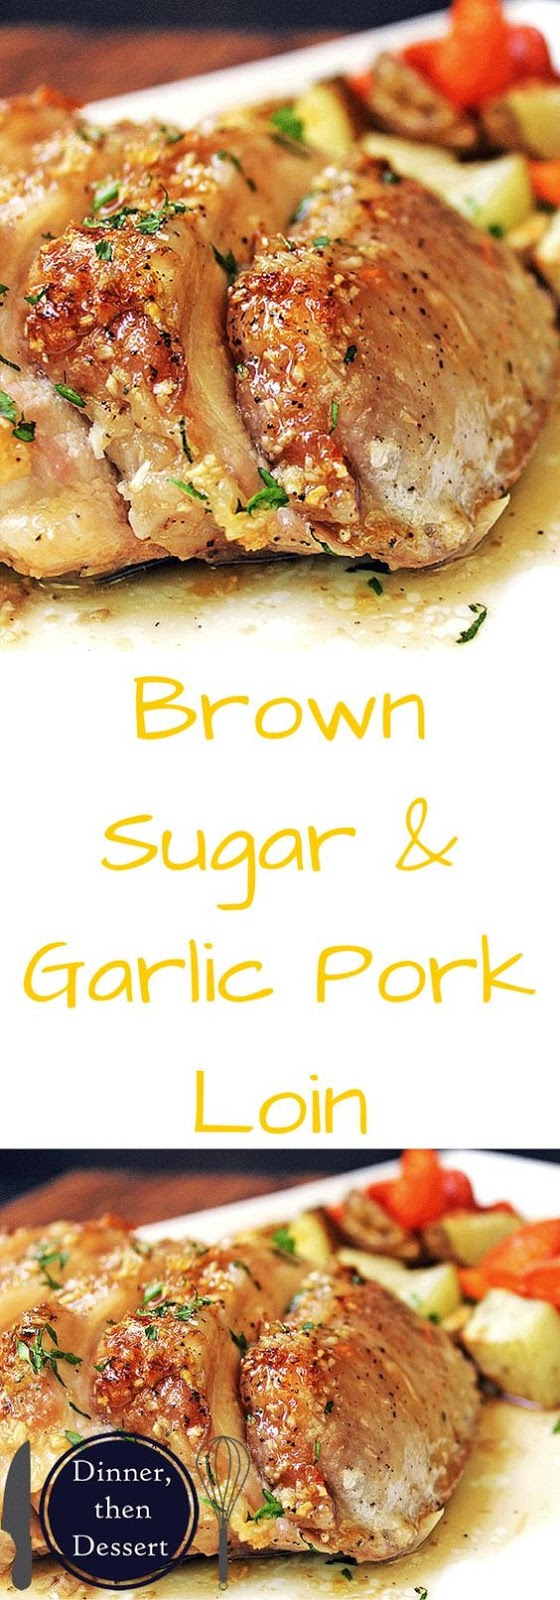 BROWN SUGAR GARLIC PORK WITH CARROTS & POTATOES